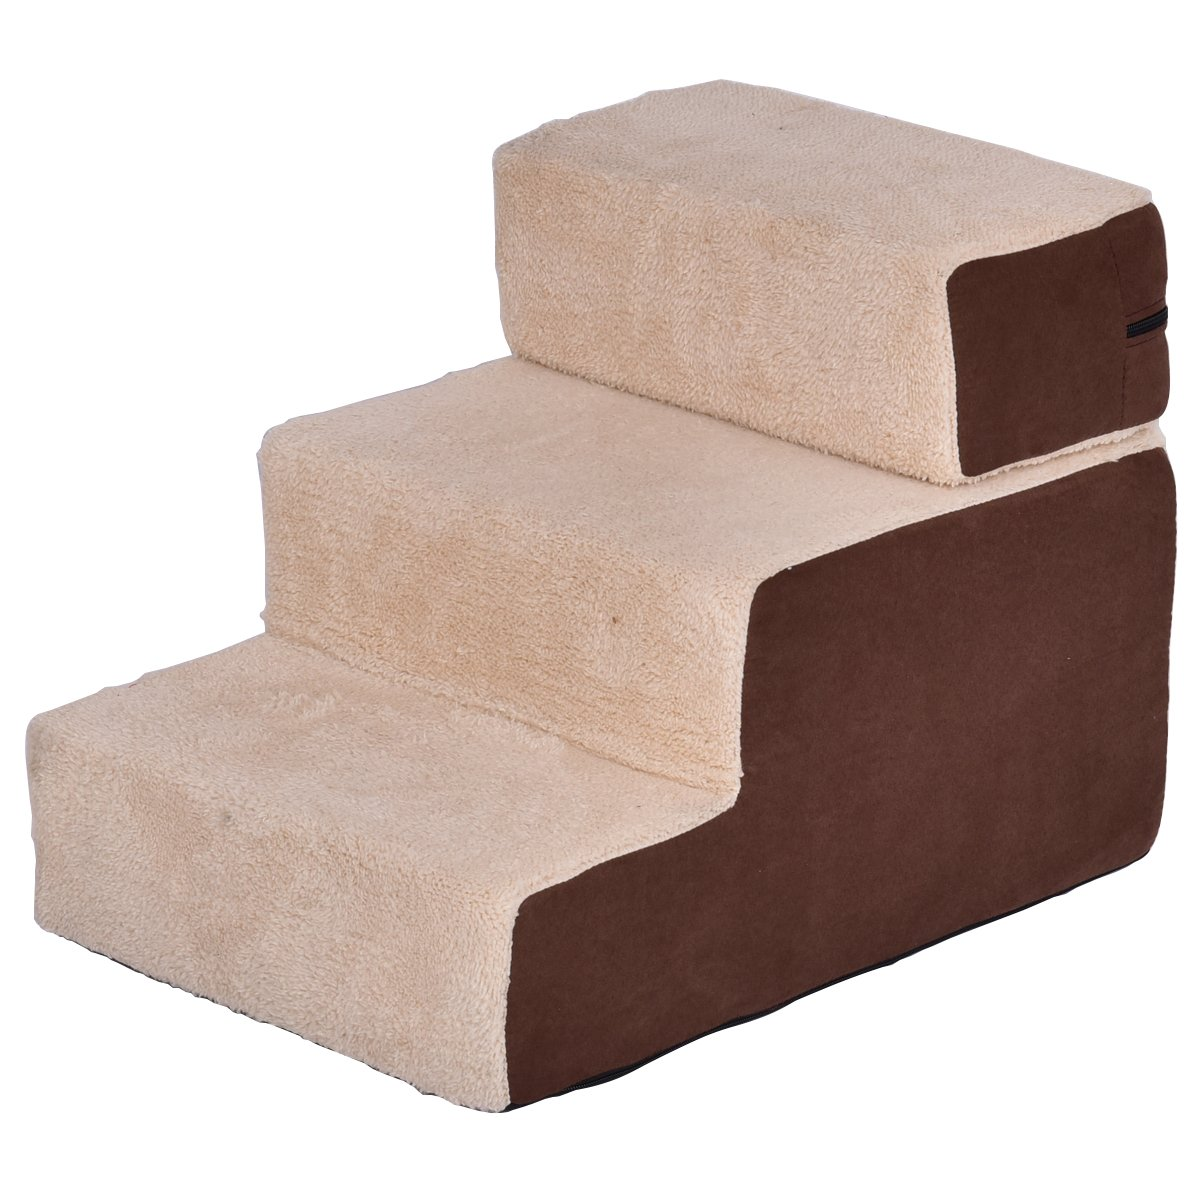 Giantex Portable Pet Stairs 3 Step Soft Step Ramp Home Décor For Dog & Cat Cotton Brown